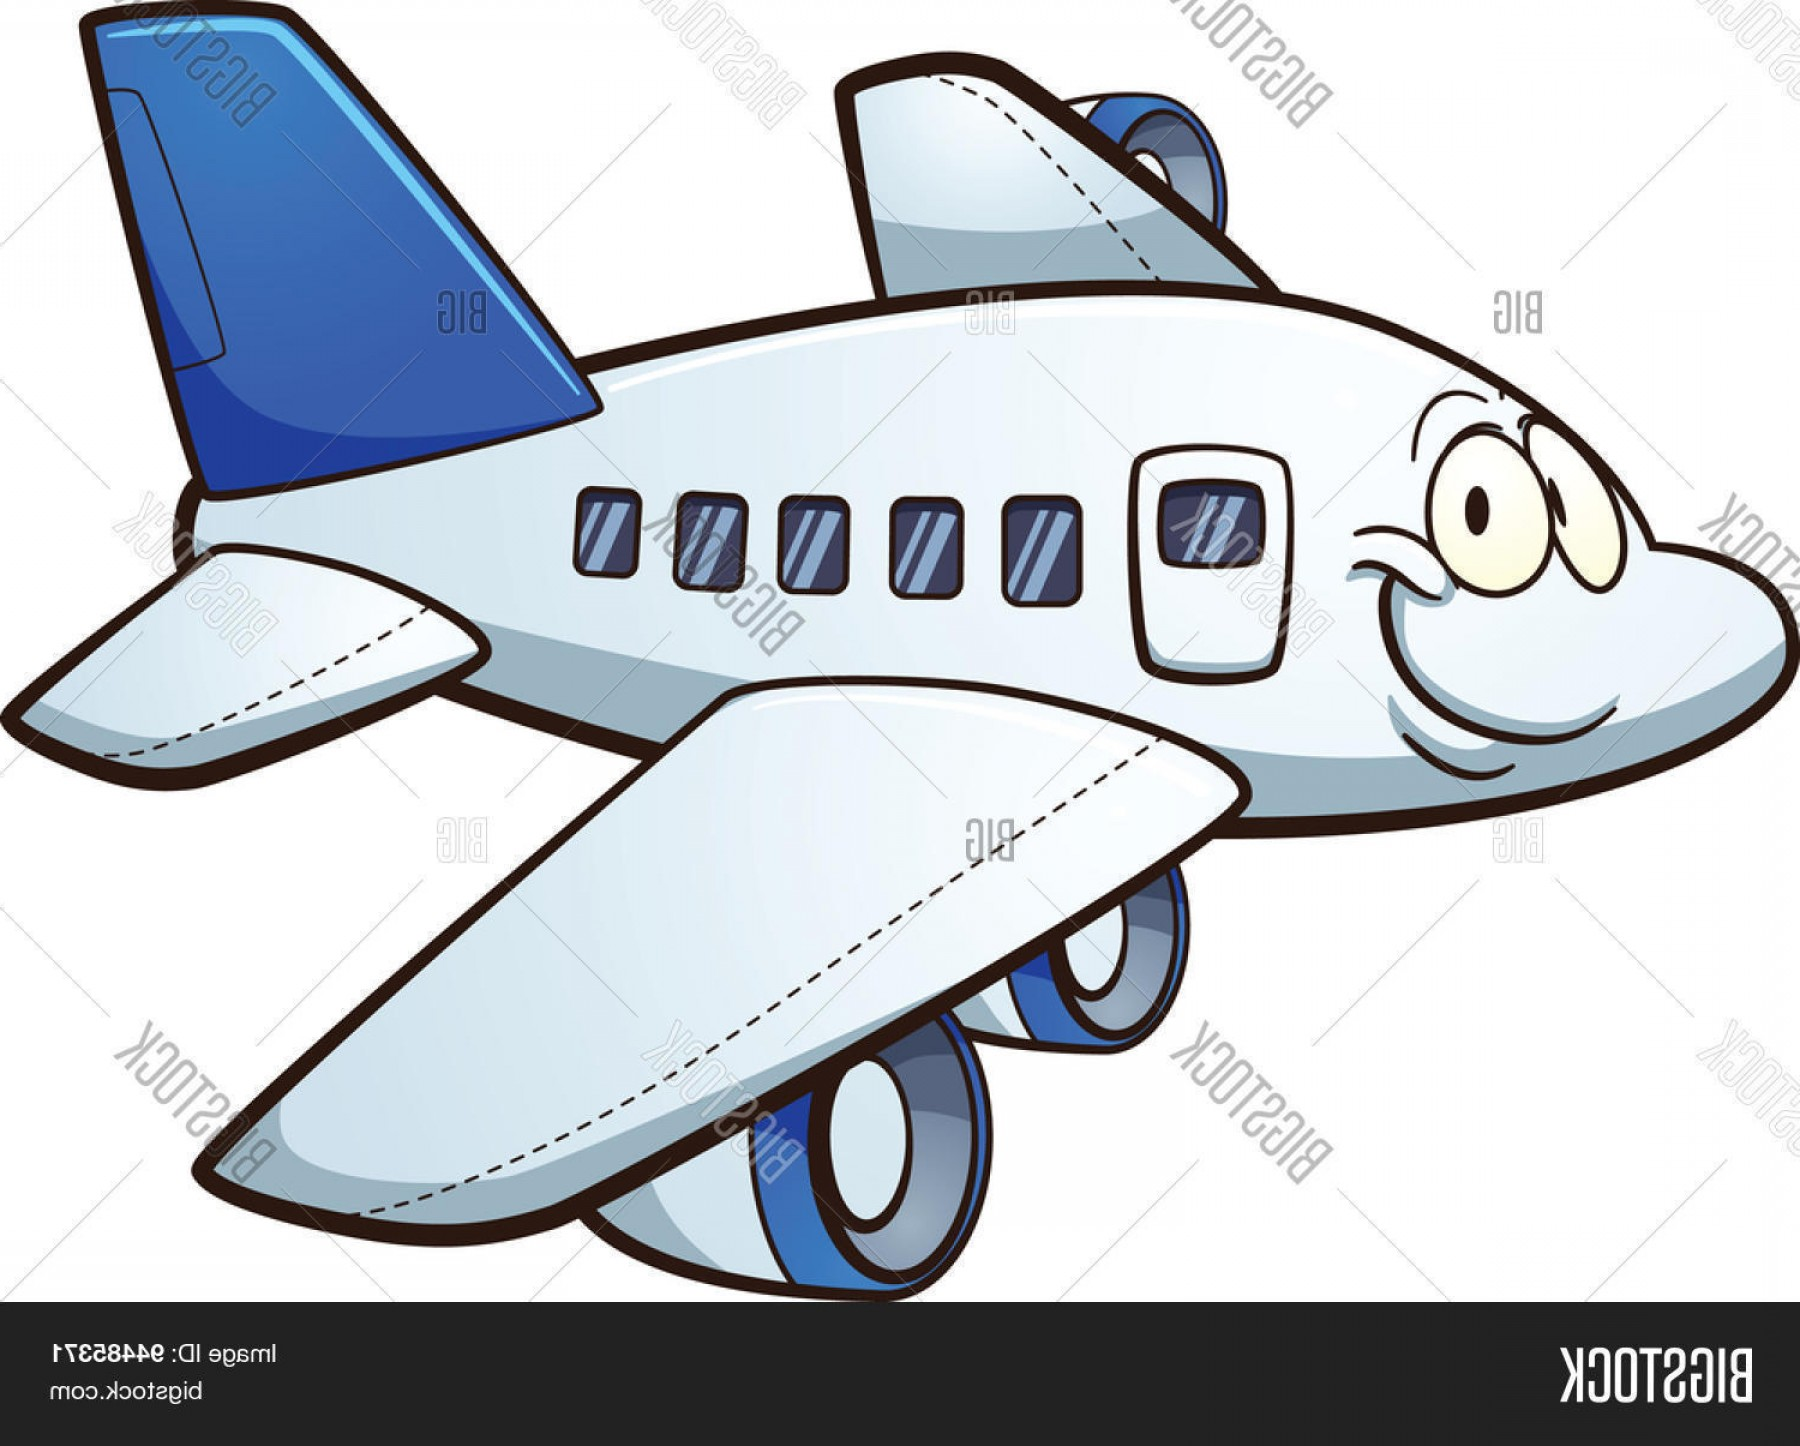 1800x1446 Airplane Vector Based Clip Art Geekchicpro